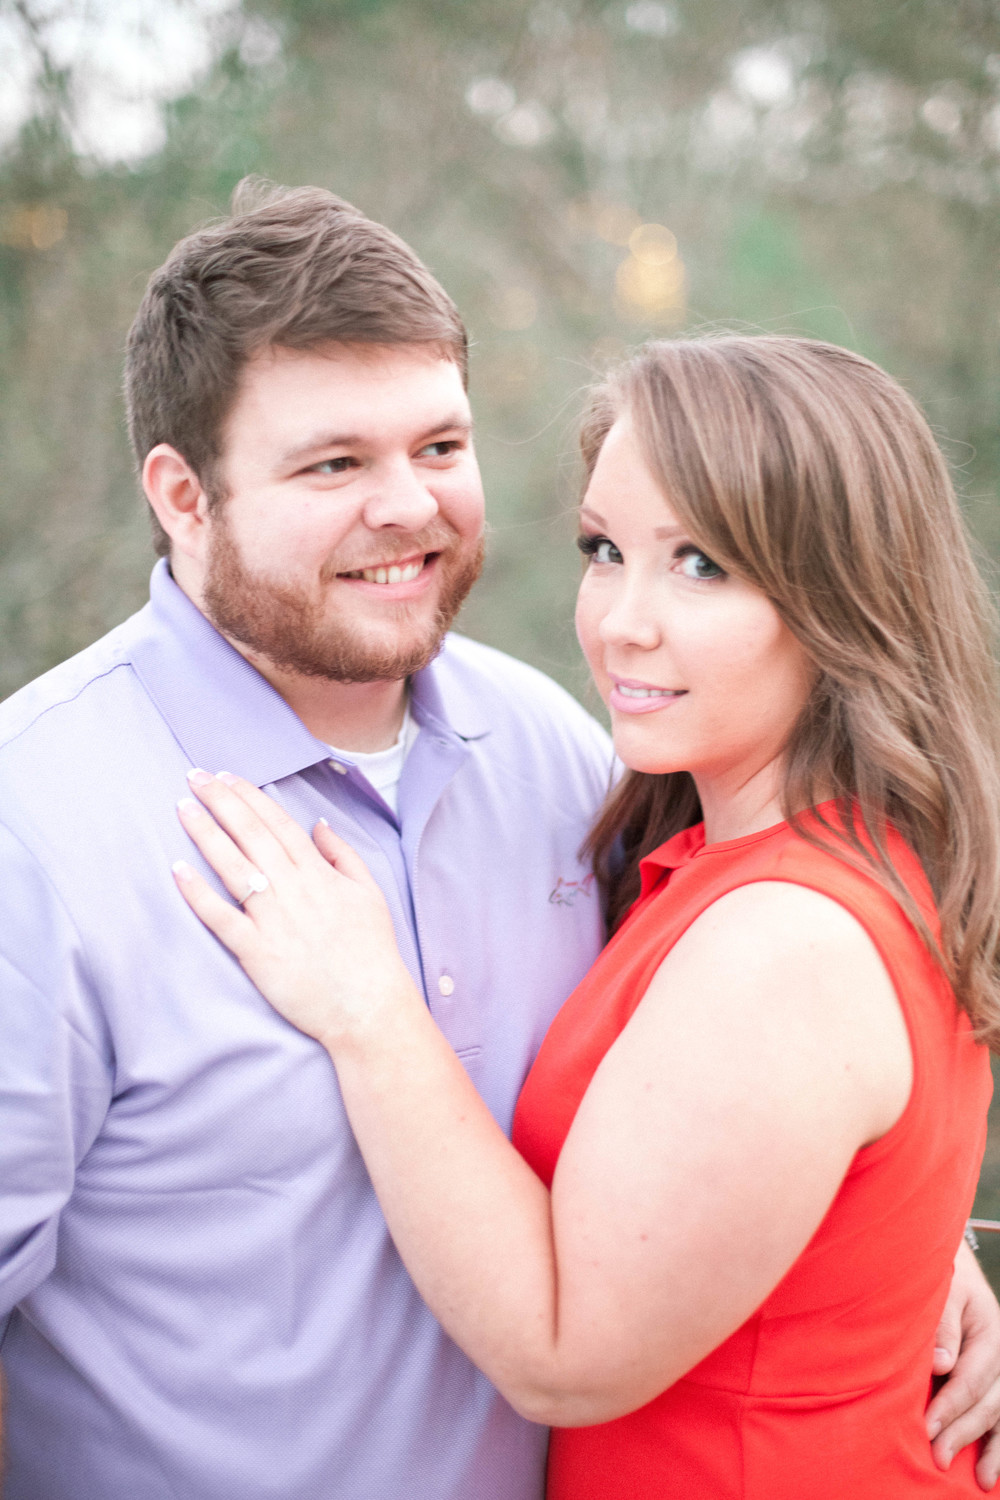 zach_gabbie_engagement_poured_out_photography-67.jpg